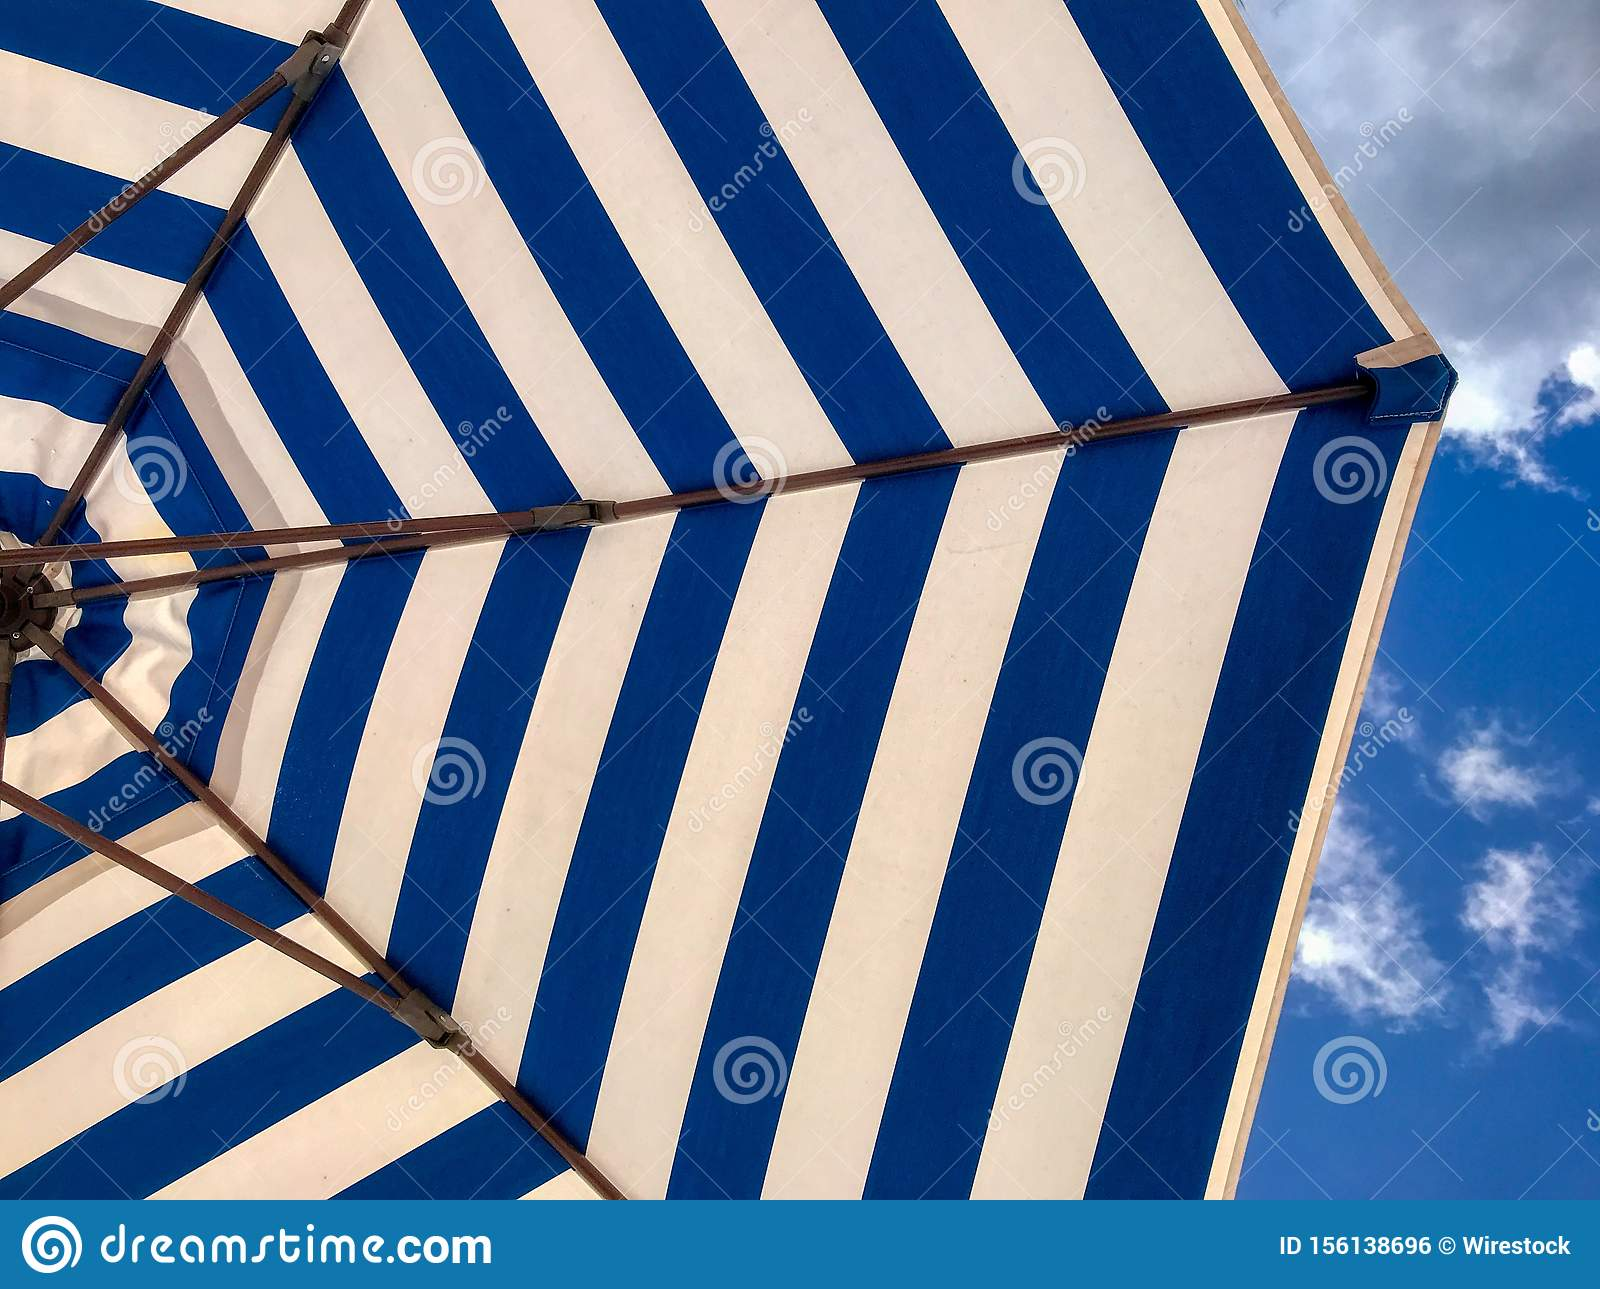 Relaxing Wallpaper With Striped Blue And White Textured